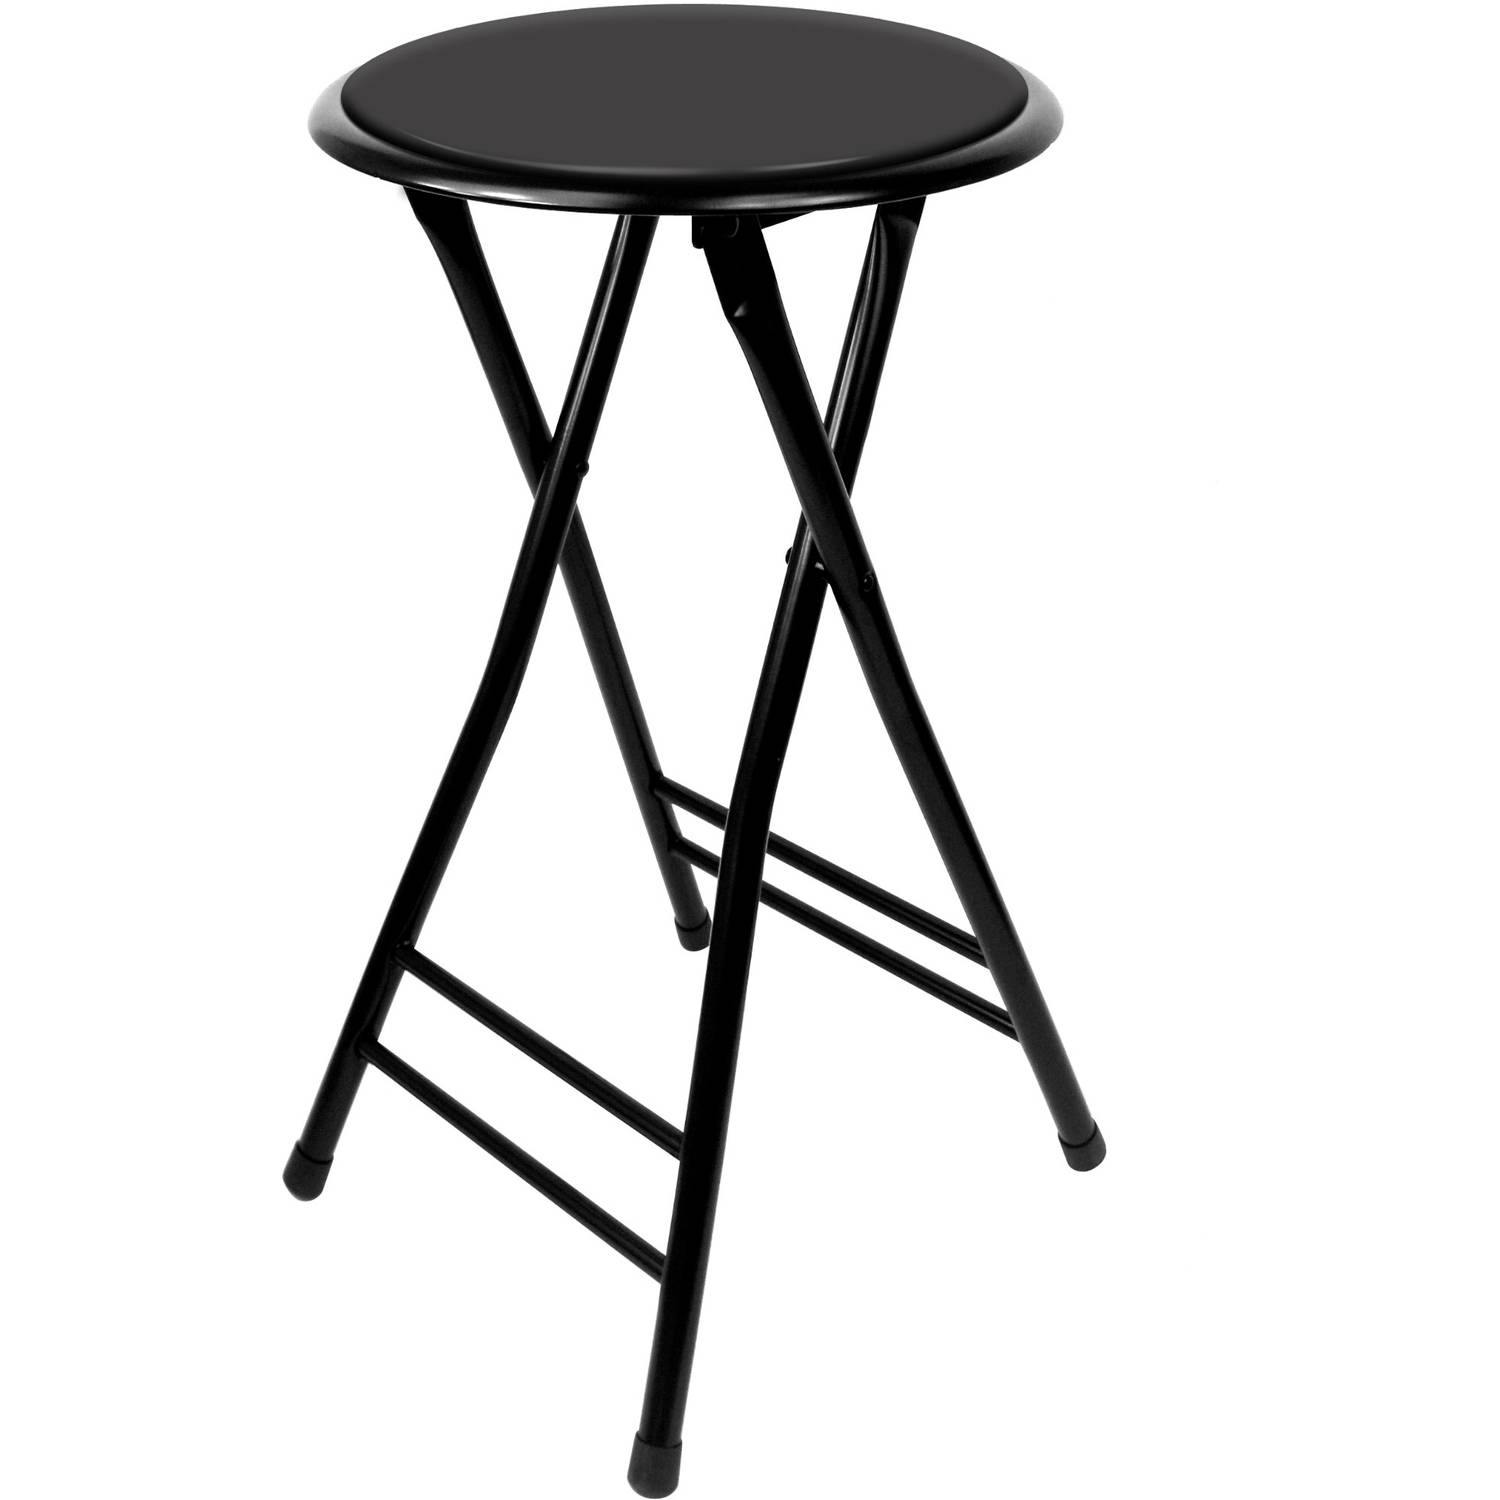 Folding Stool Heavy Duty 24 Inch Collapsible Padded Round Stool